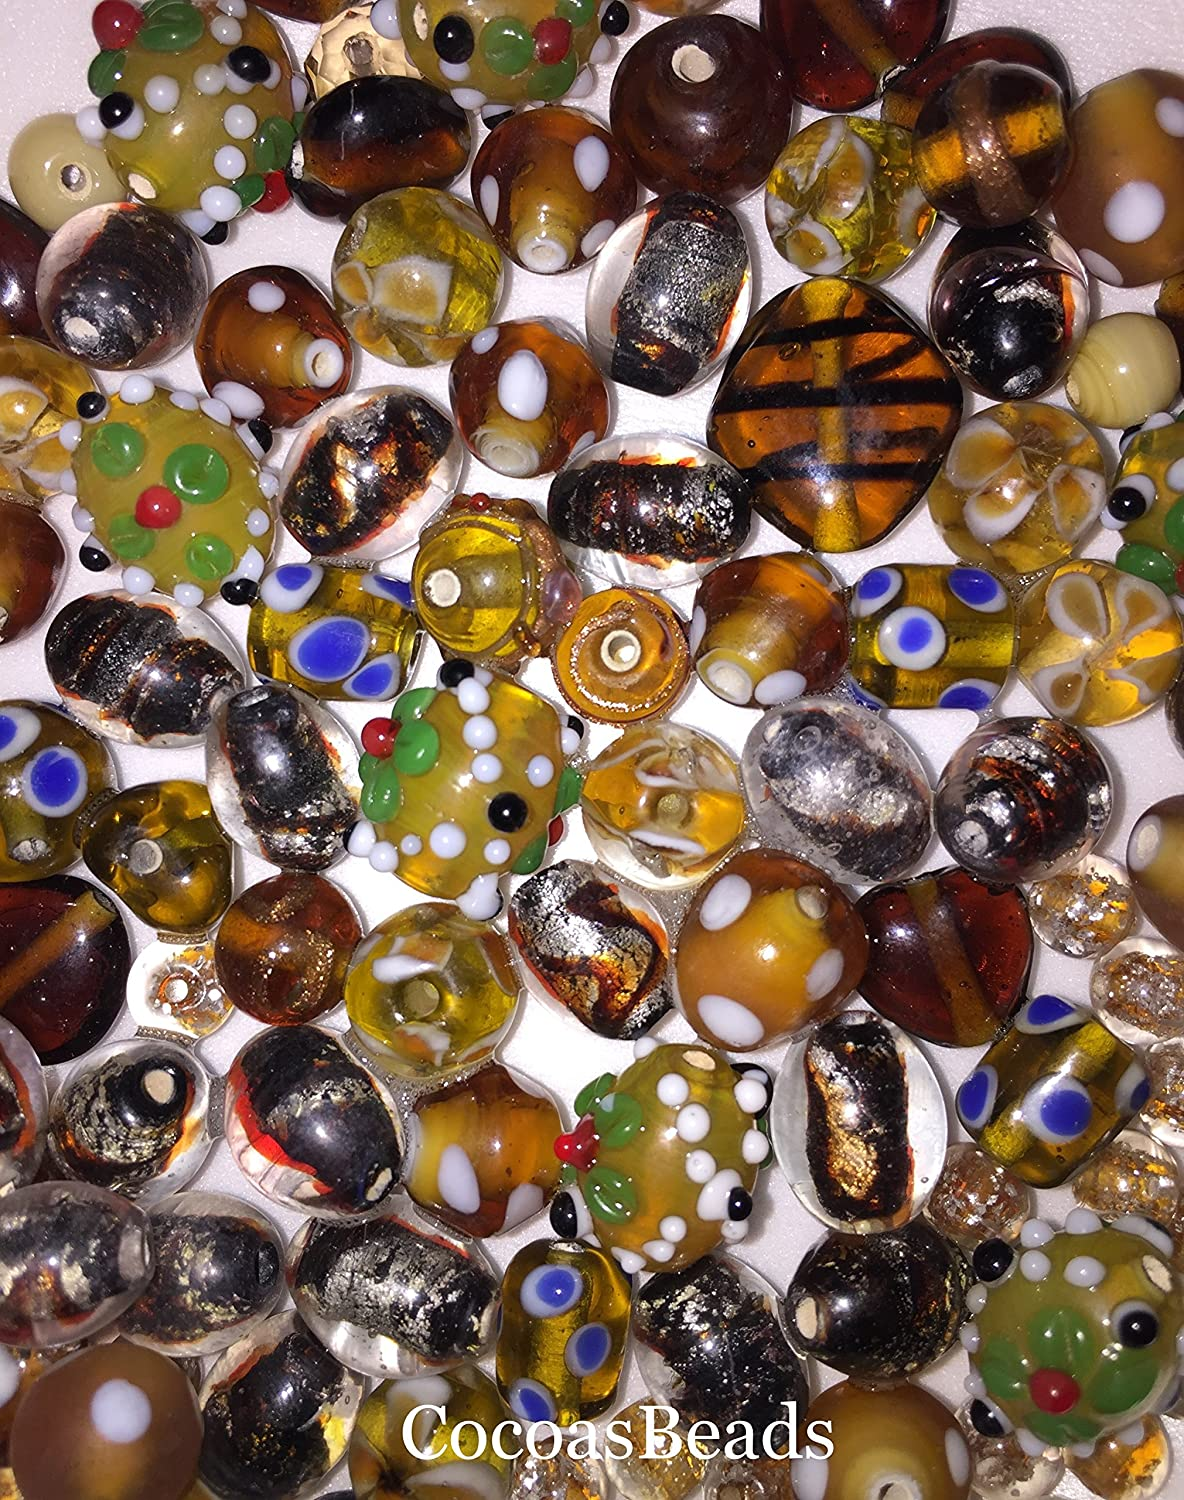 75 grams of Amber Czech Glass Beads in assorted Shapes